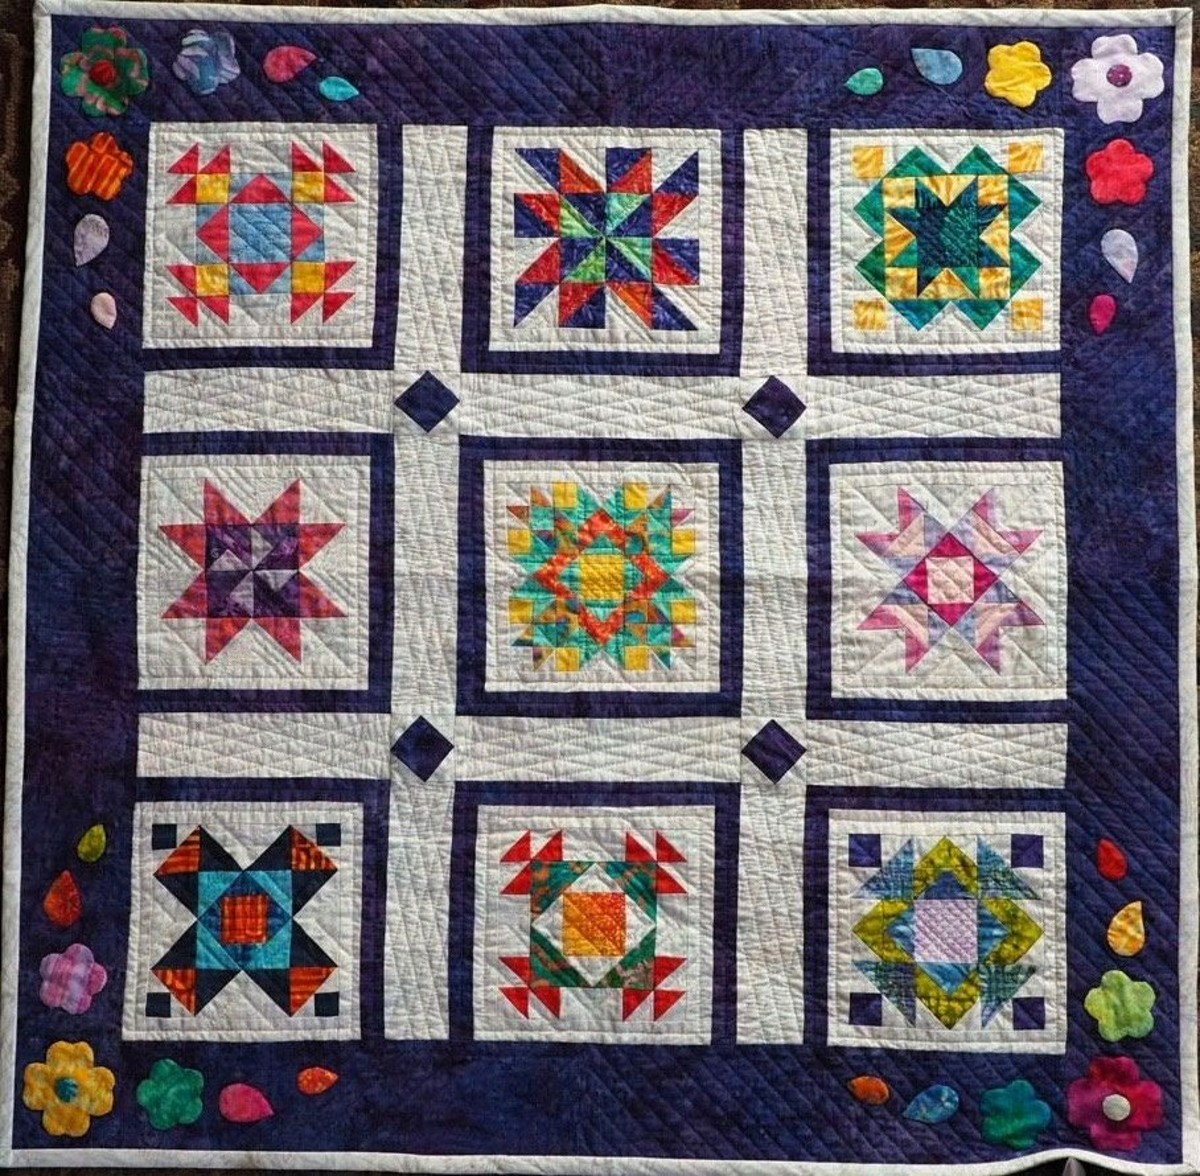 Every block is different in a sampler quilt.